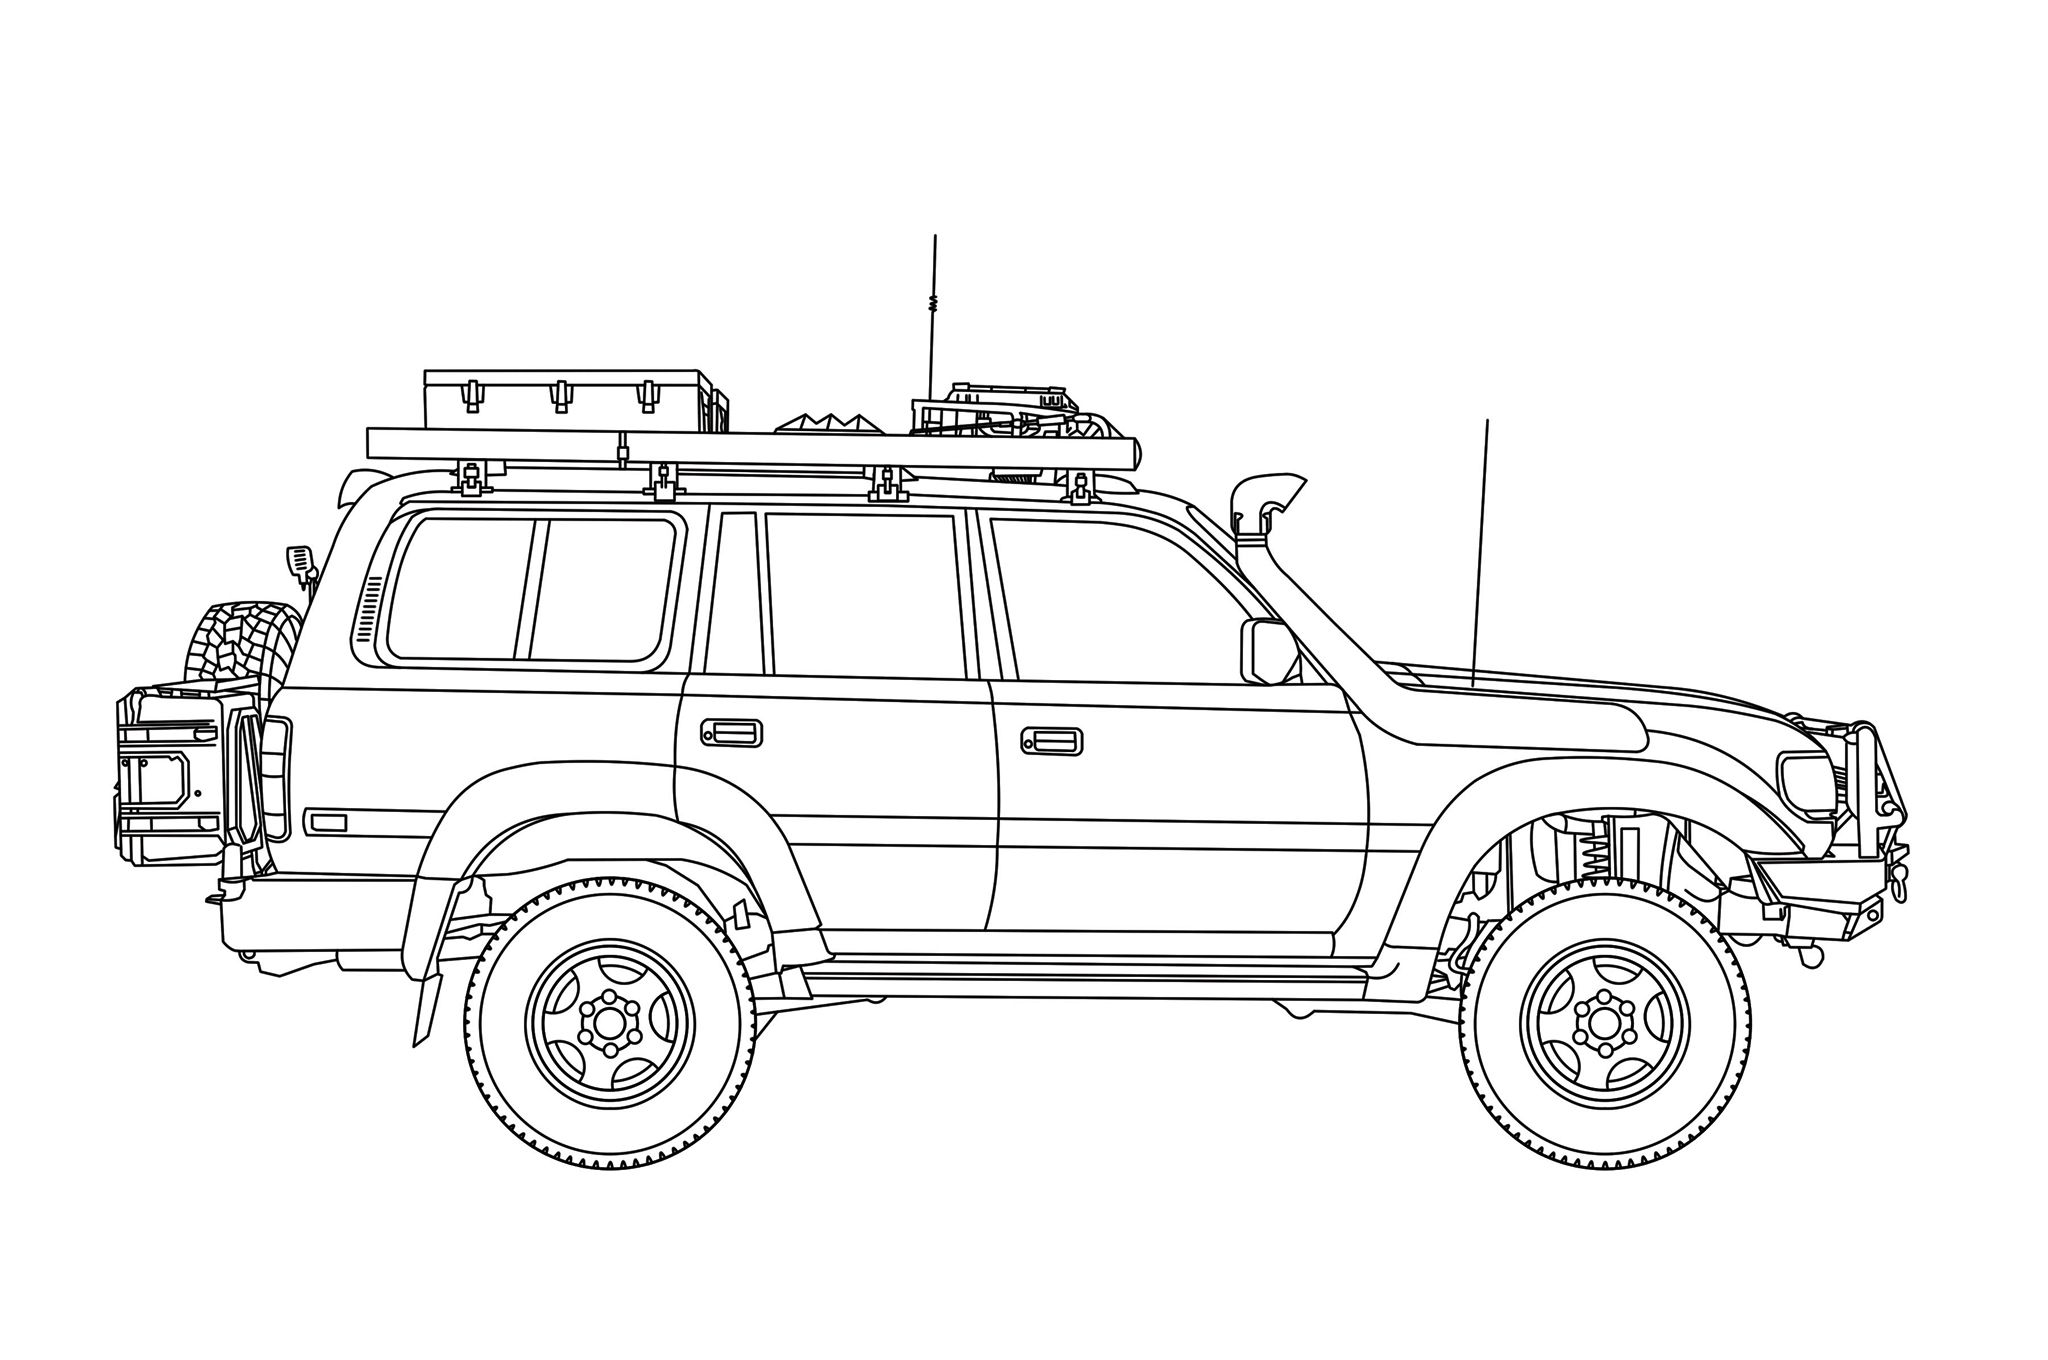 1994 toyota land cruiser diagram profile [ 2048 x 1360 Pixel ]